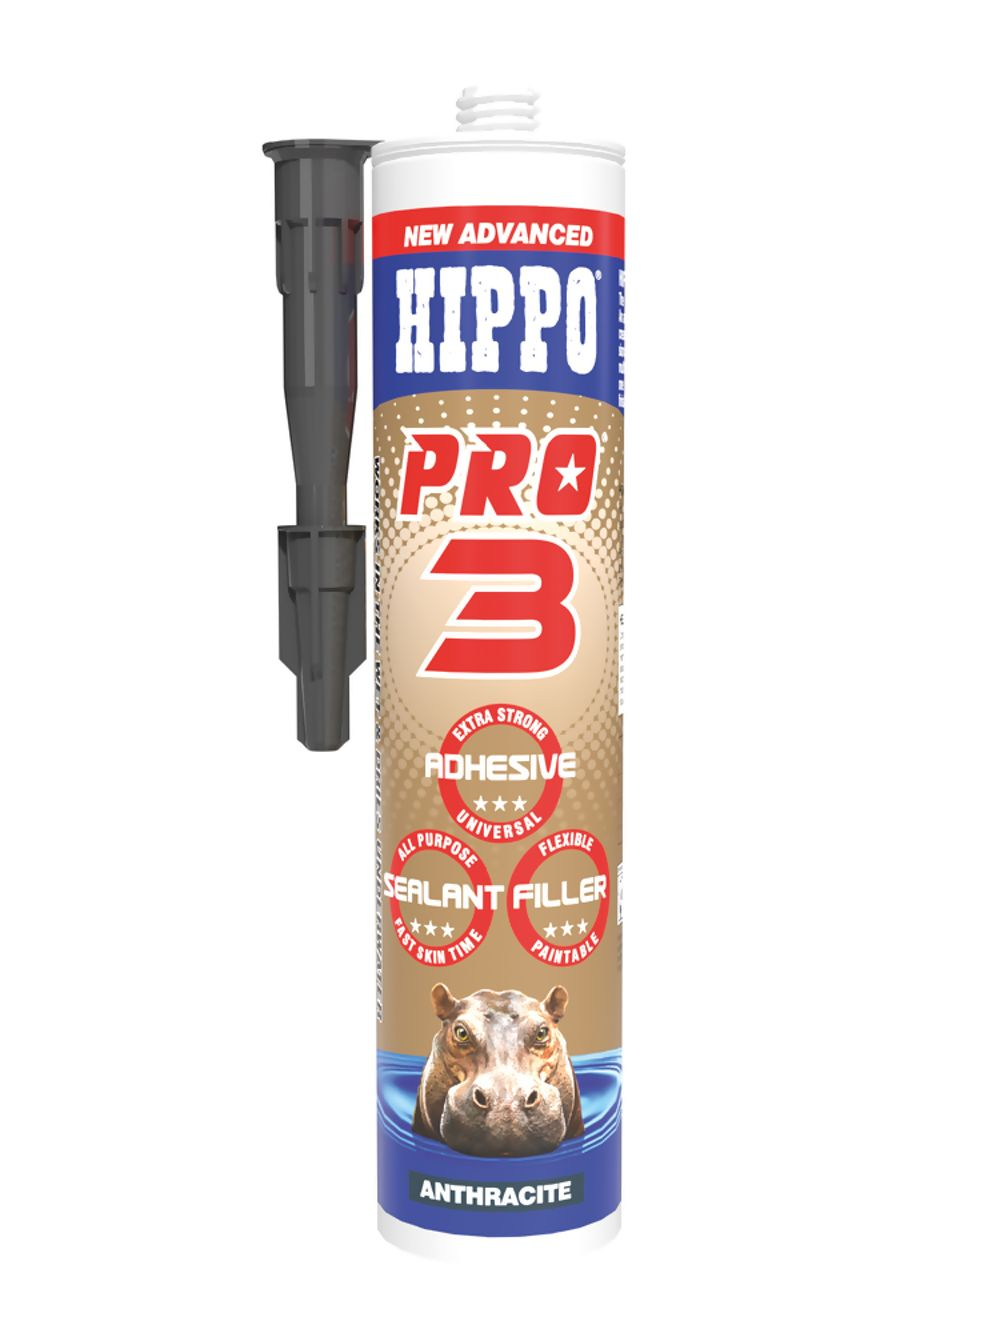 Hippo Pro 3 All Weather Sealant, Adhesive & Filler Anthracite 310ml Ref H18548